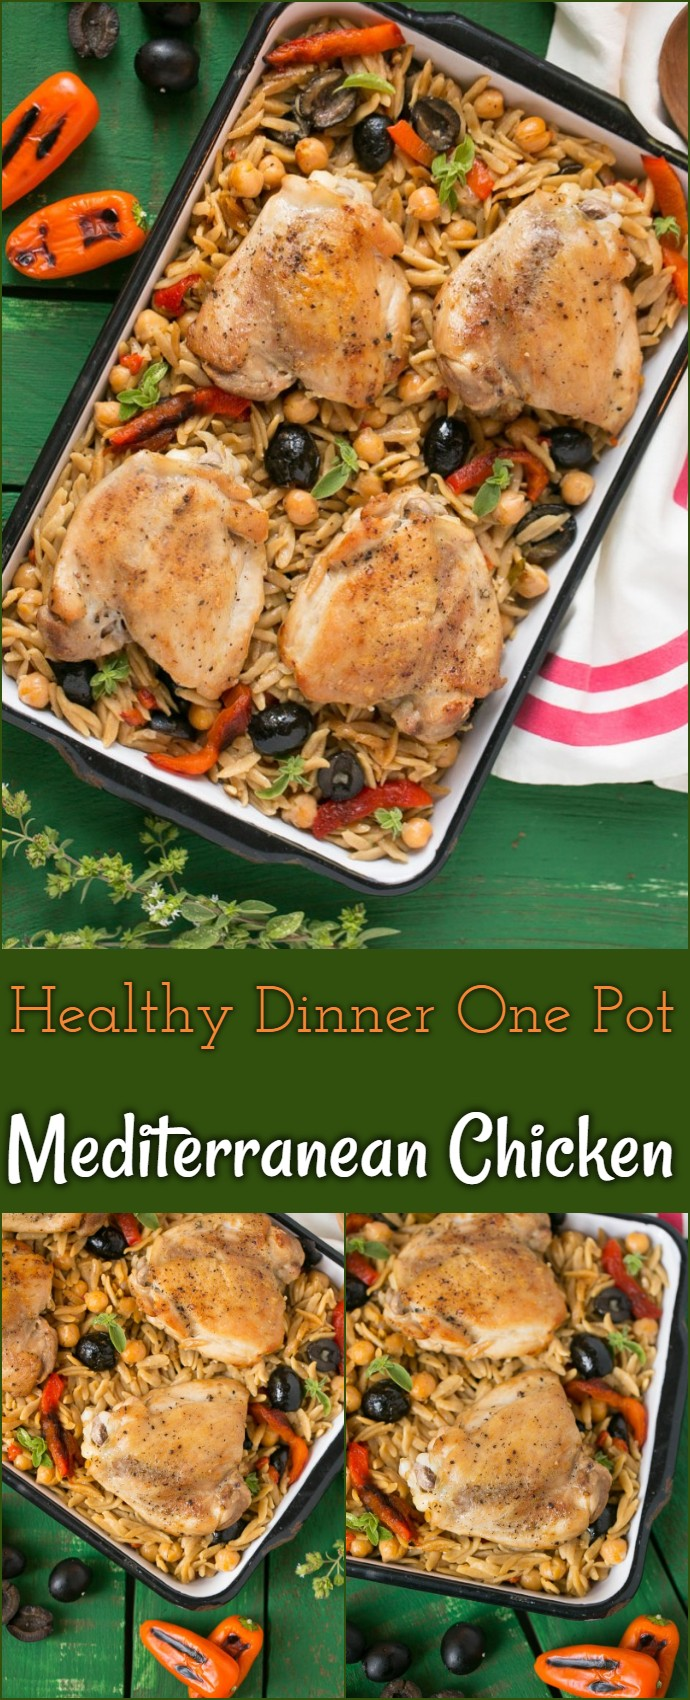 Healthy Dinner One Pot Mediterranean Chicken